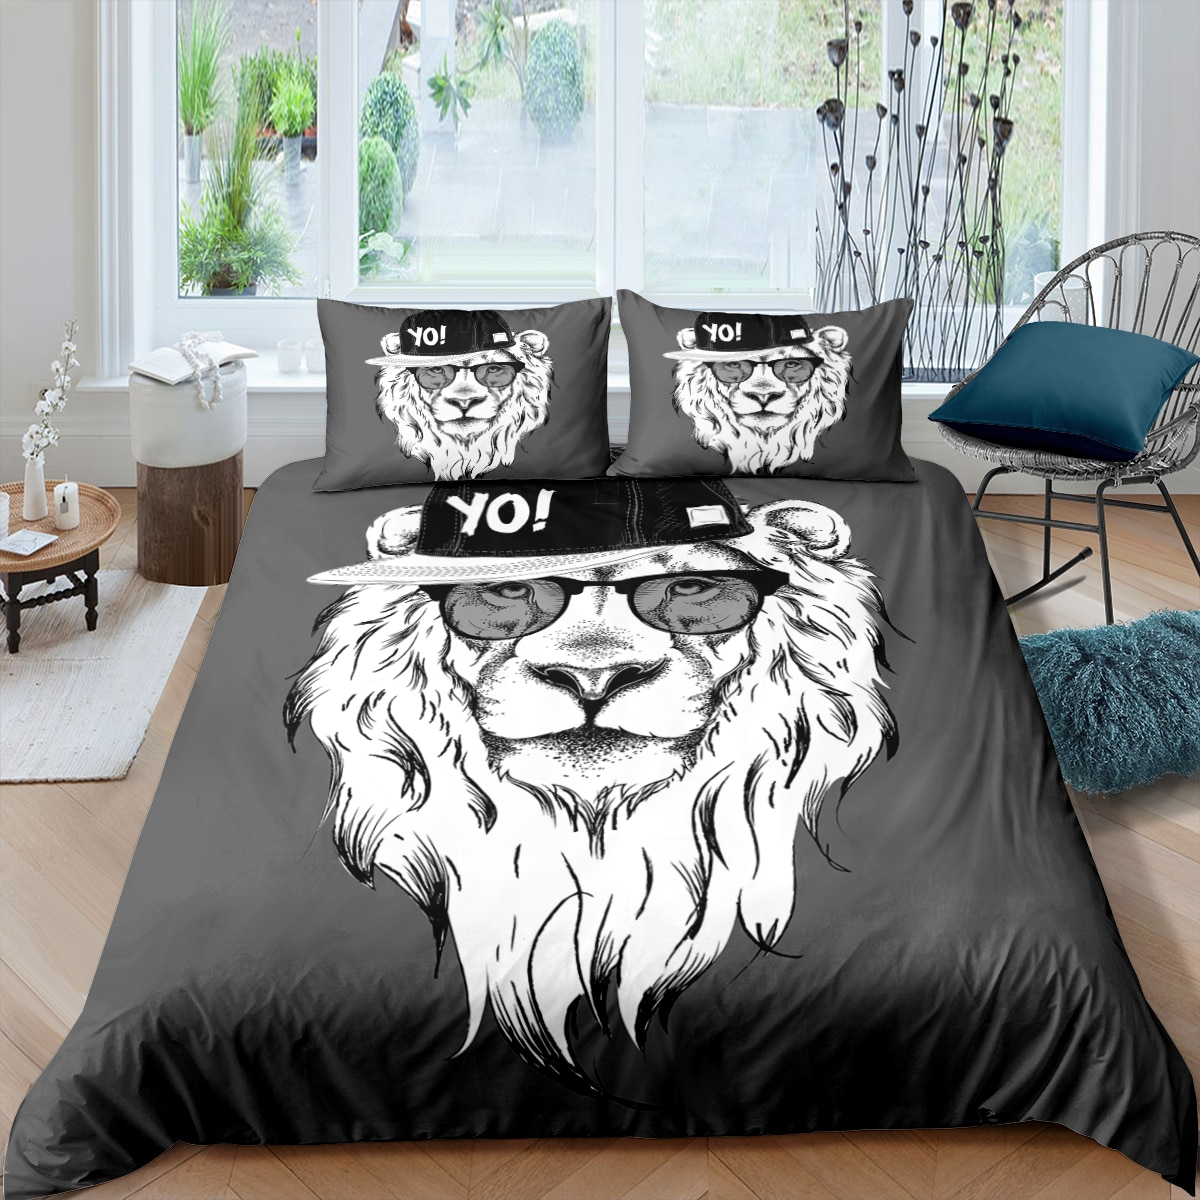 Animal Rapper Printed Duvet Cover Pillowcase 3D Cartoon Bedding Set Adult Single Twin Double Queen King Size Home Textiles